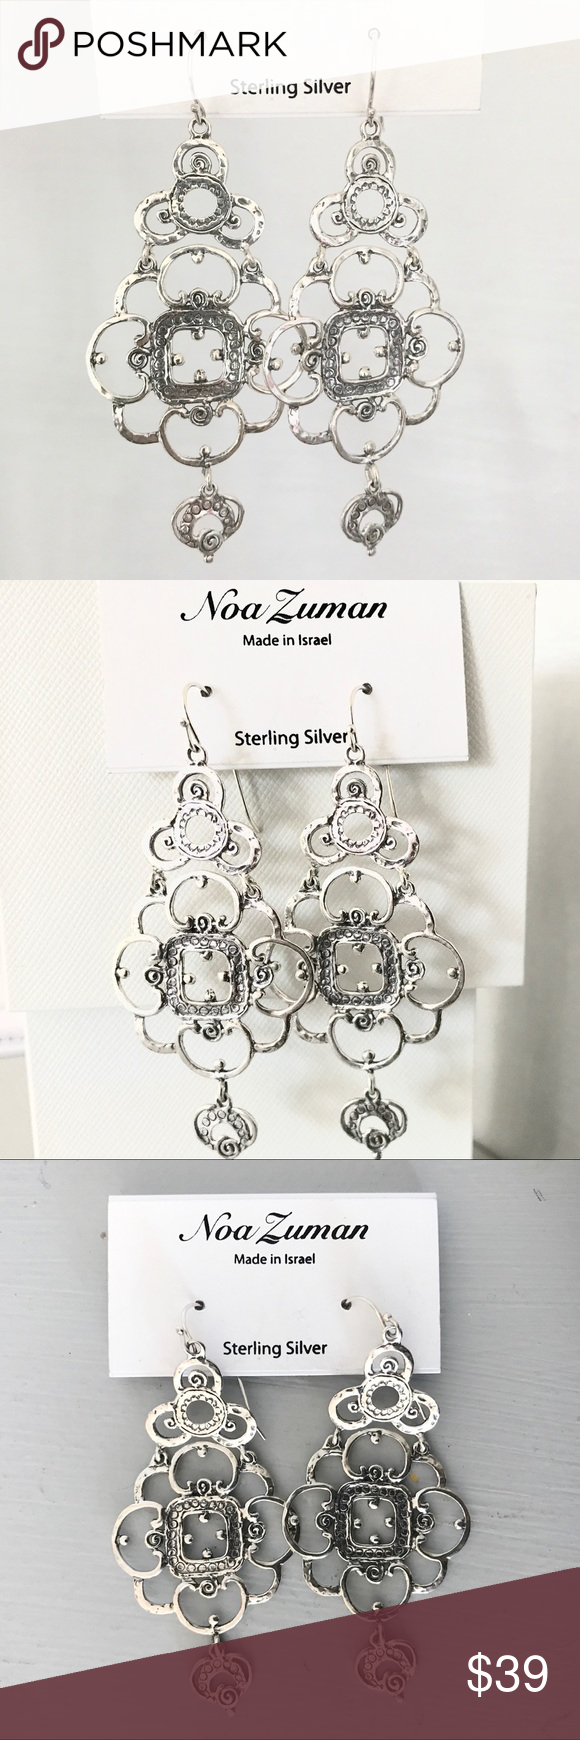 f2f8c9b2c Noa Zuman Sterling Silver dangle earrings Beautiful Sterling silver earrings  by Noa Zuman in a gorgeous design made from Sterling silver.